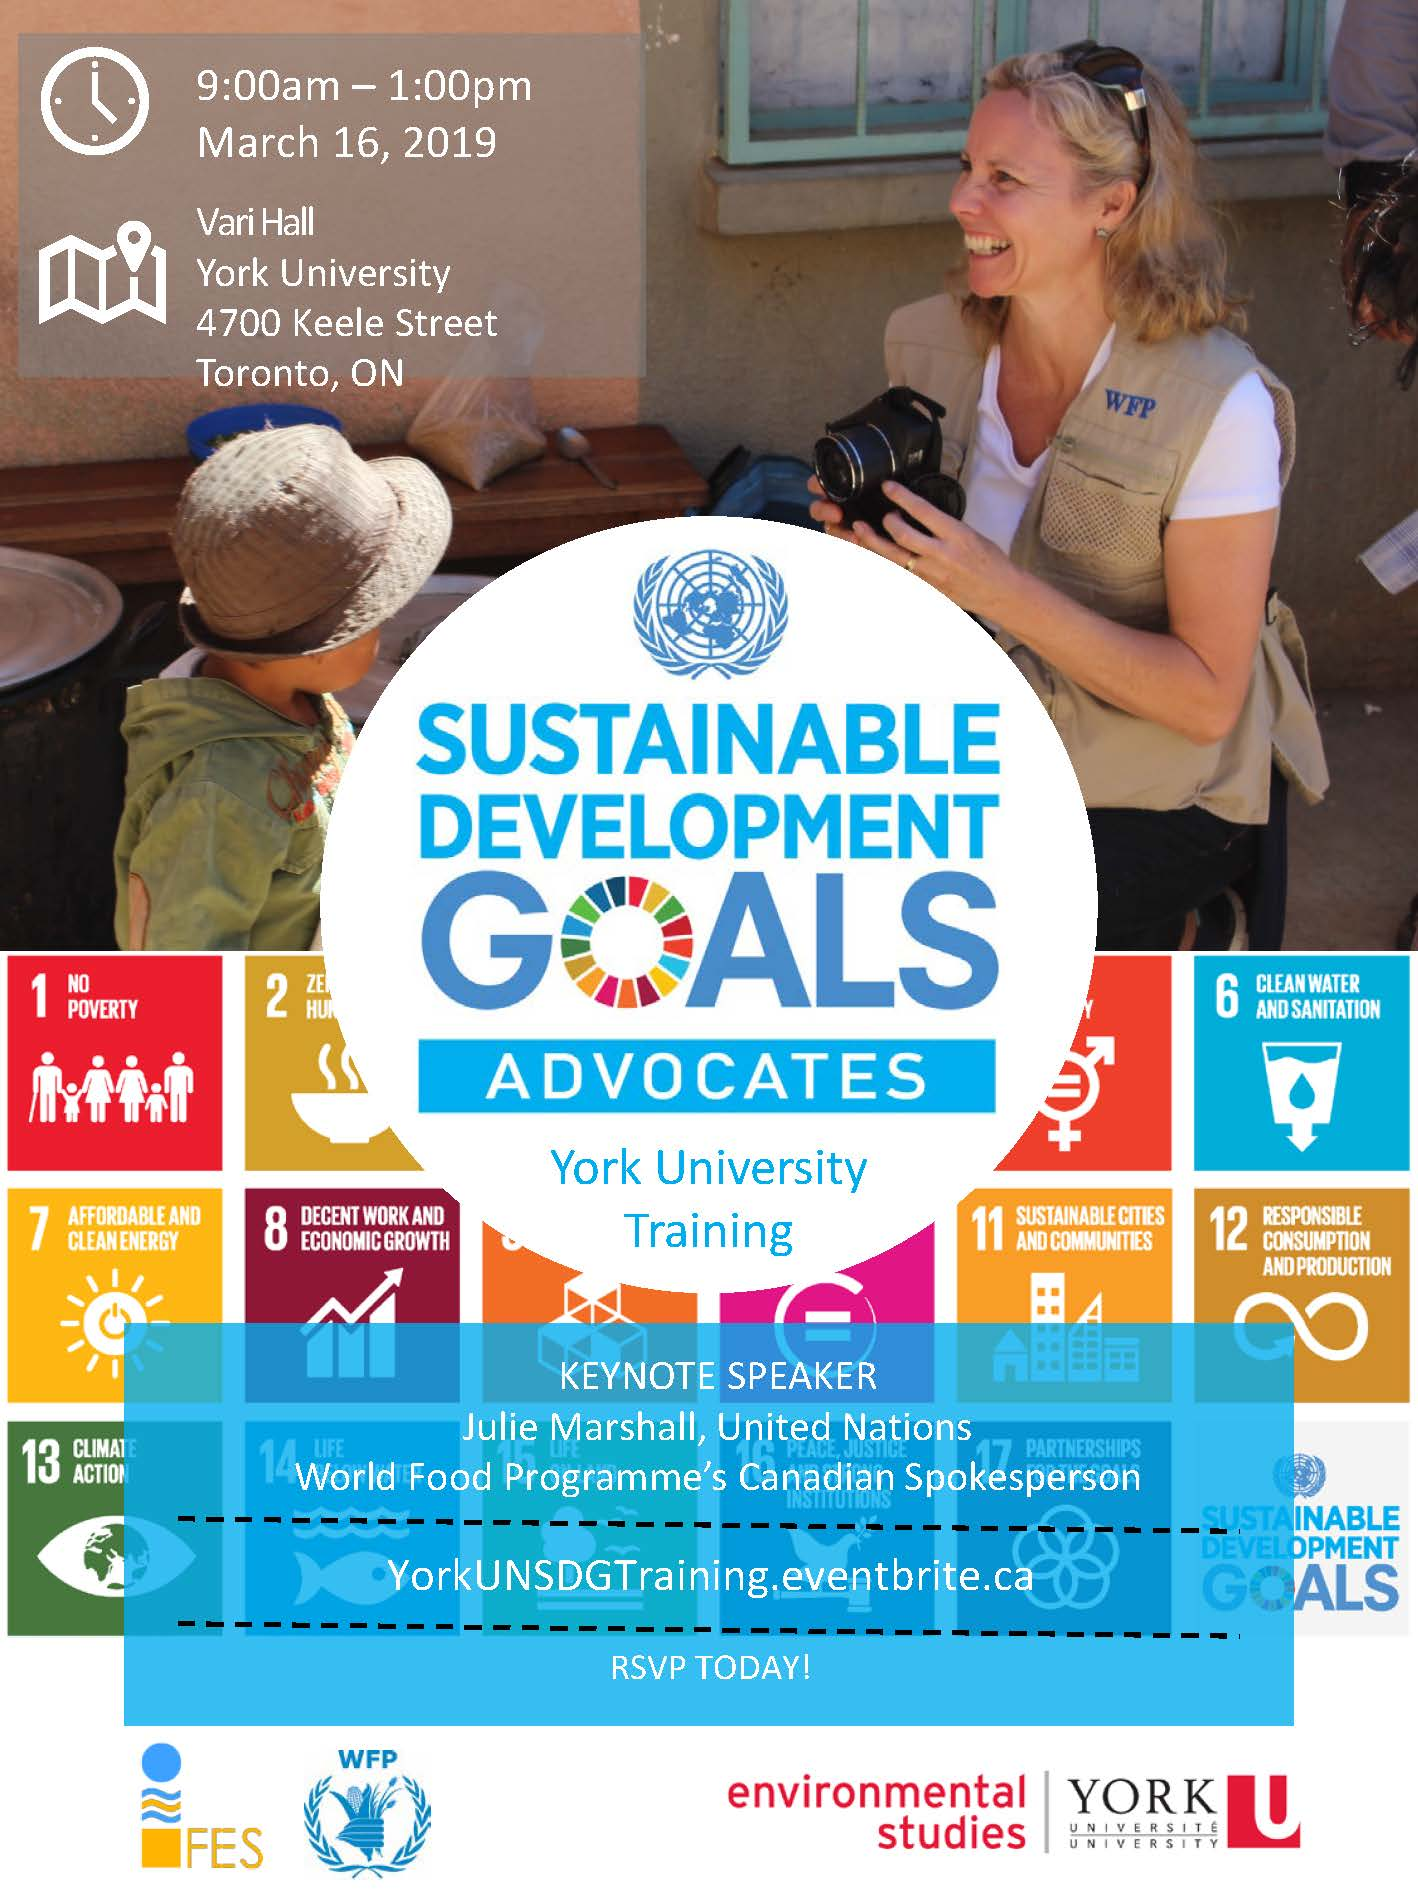 UN SDG Poster Advertisement with image of Julie Marshall and UN Sdg branded information